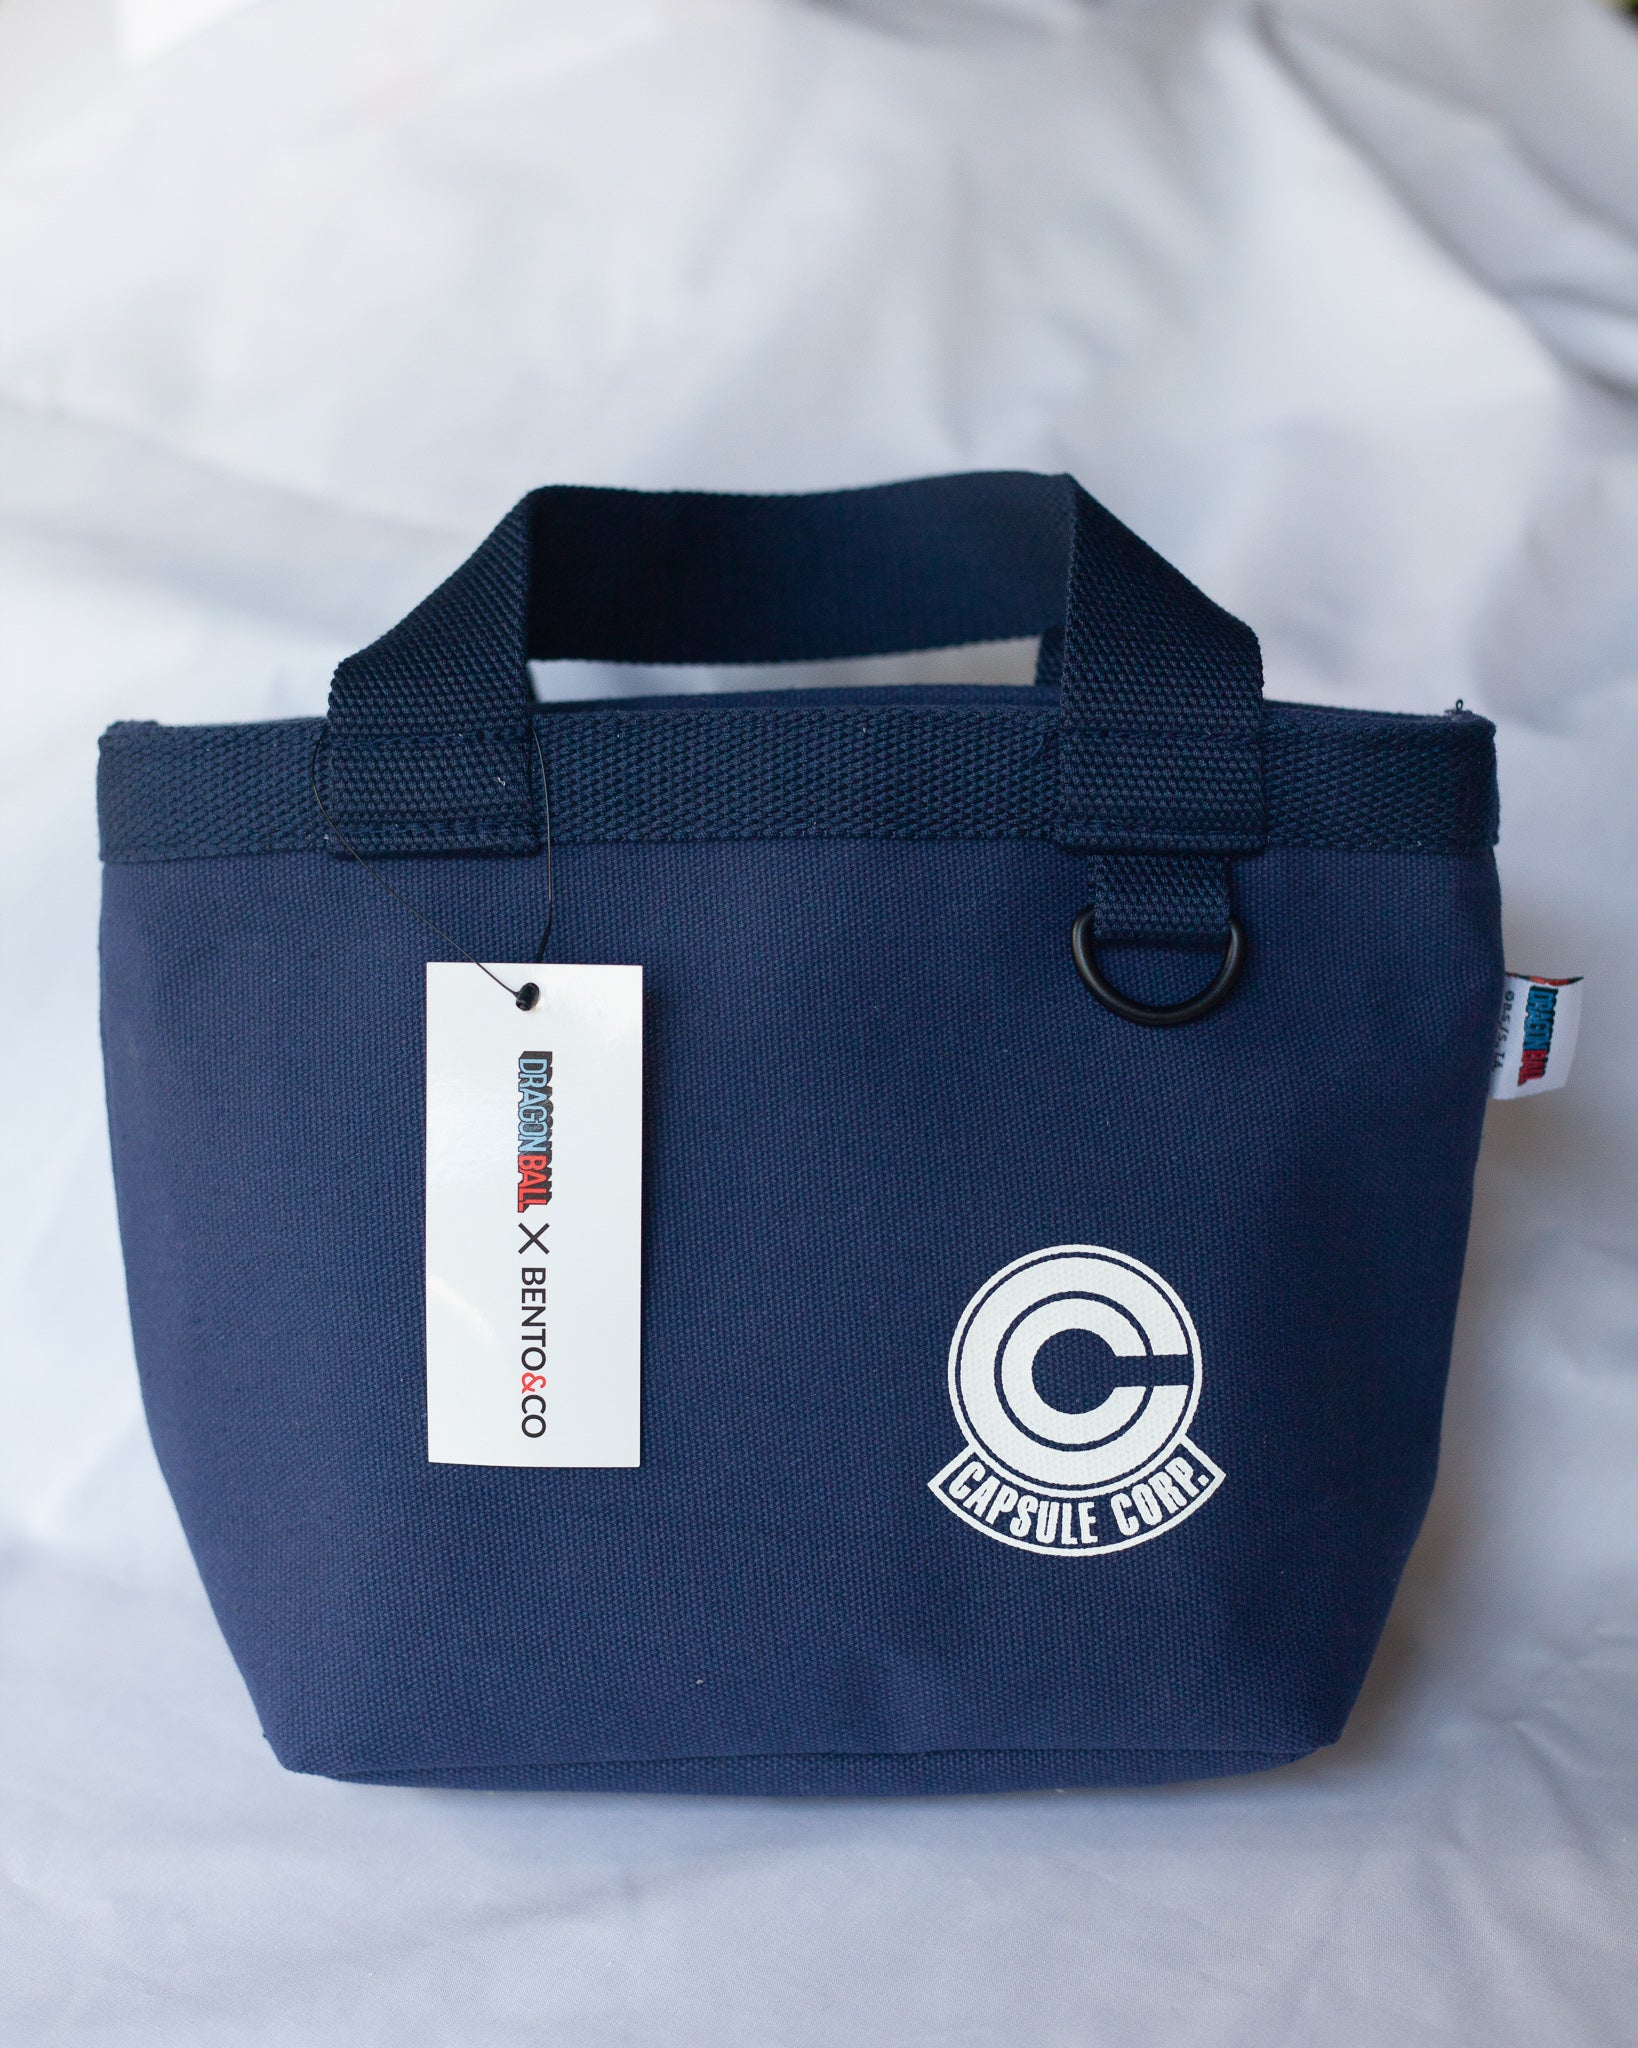 Capsule Corp. Cooler Bag | Dragon Ball